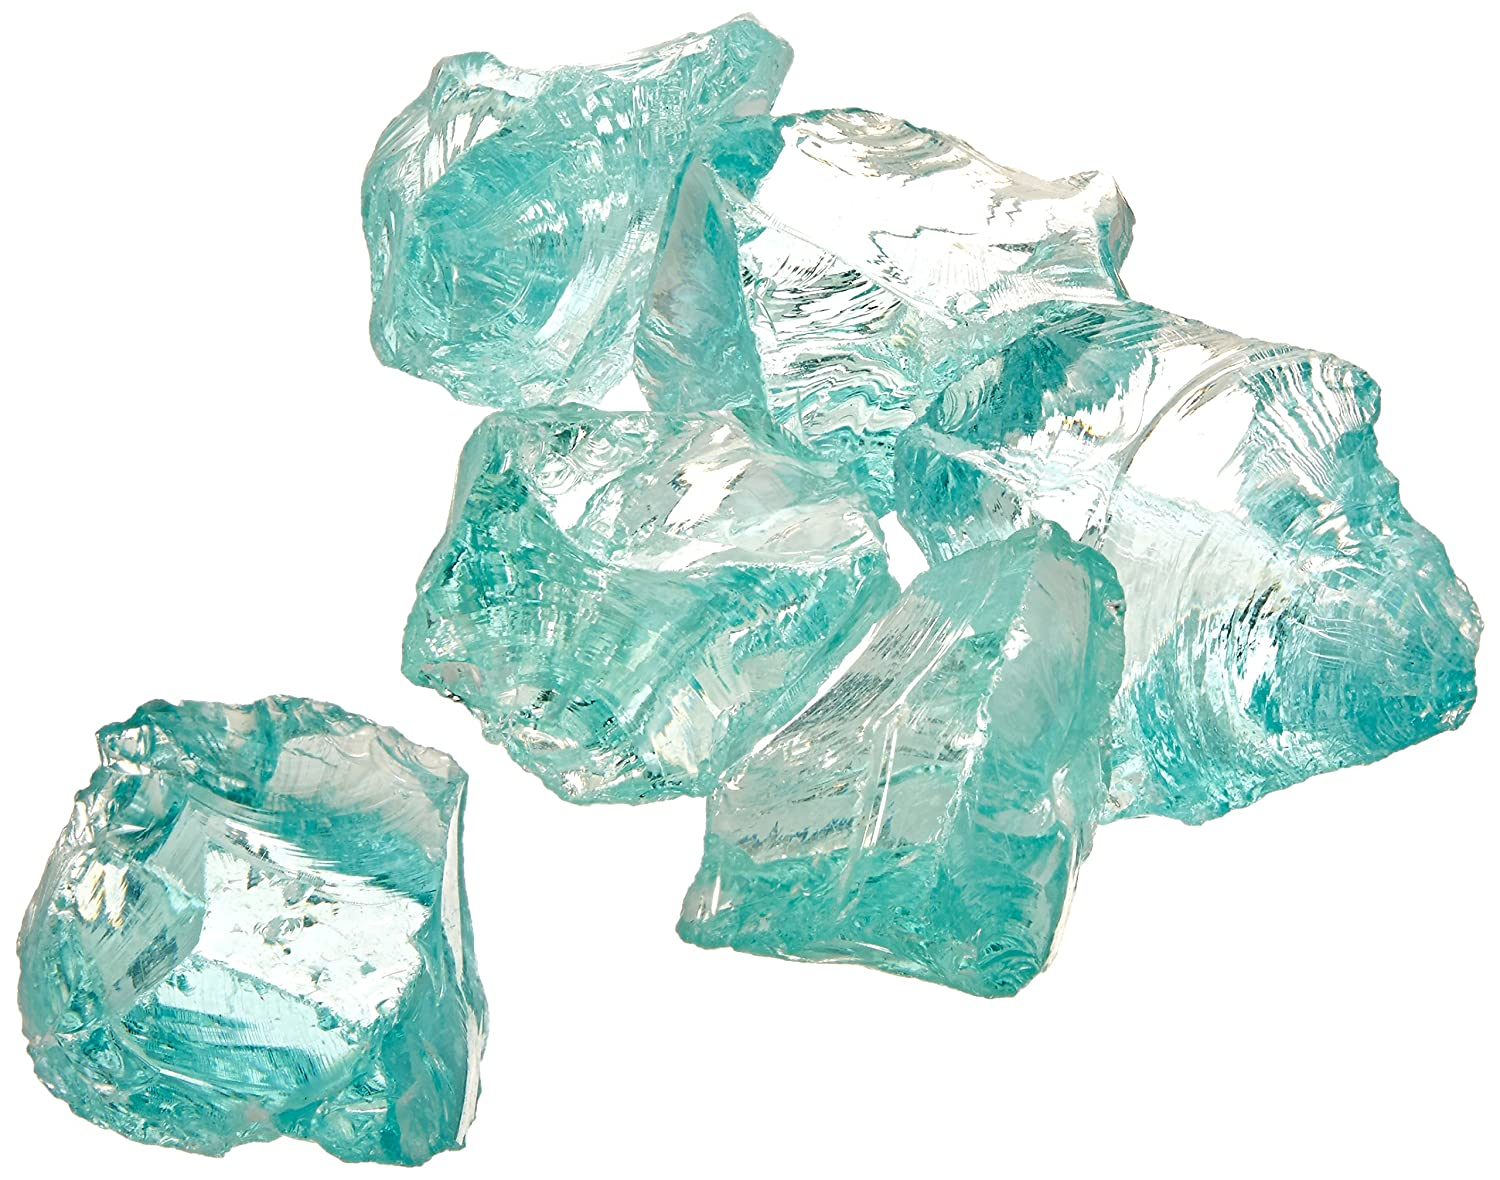 Dragon Glass 10 lb. Medium Ice Clear Landscape Glass 1/2 DFG10-L01M